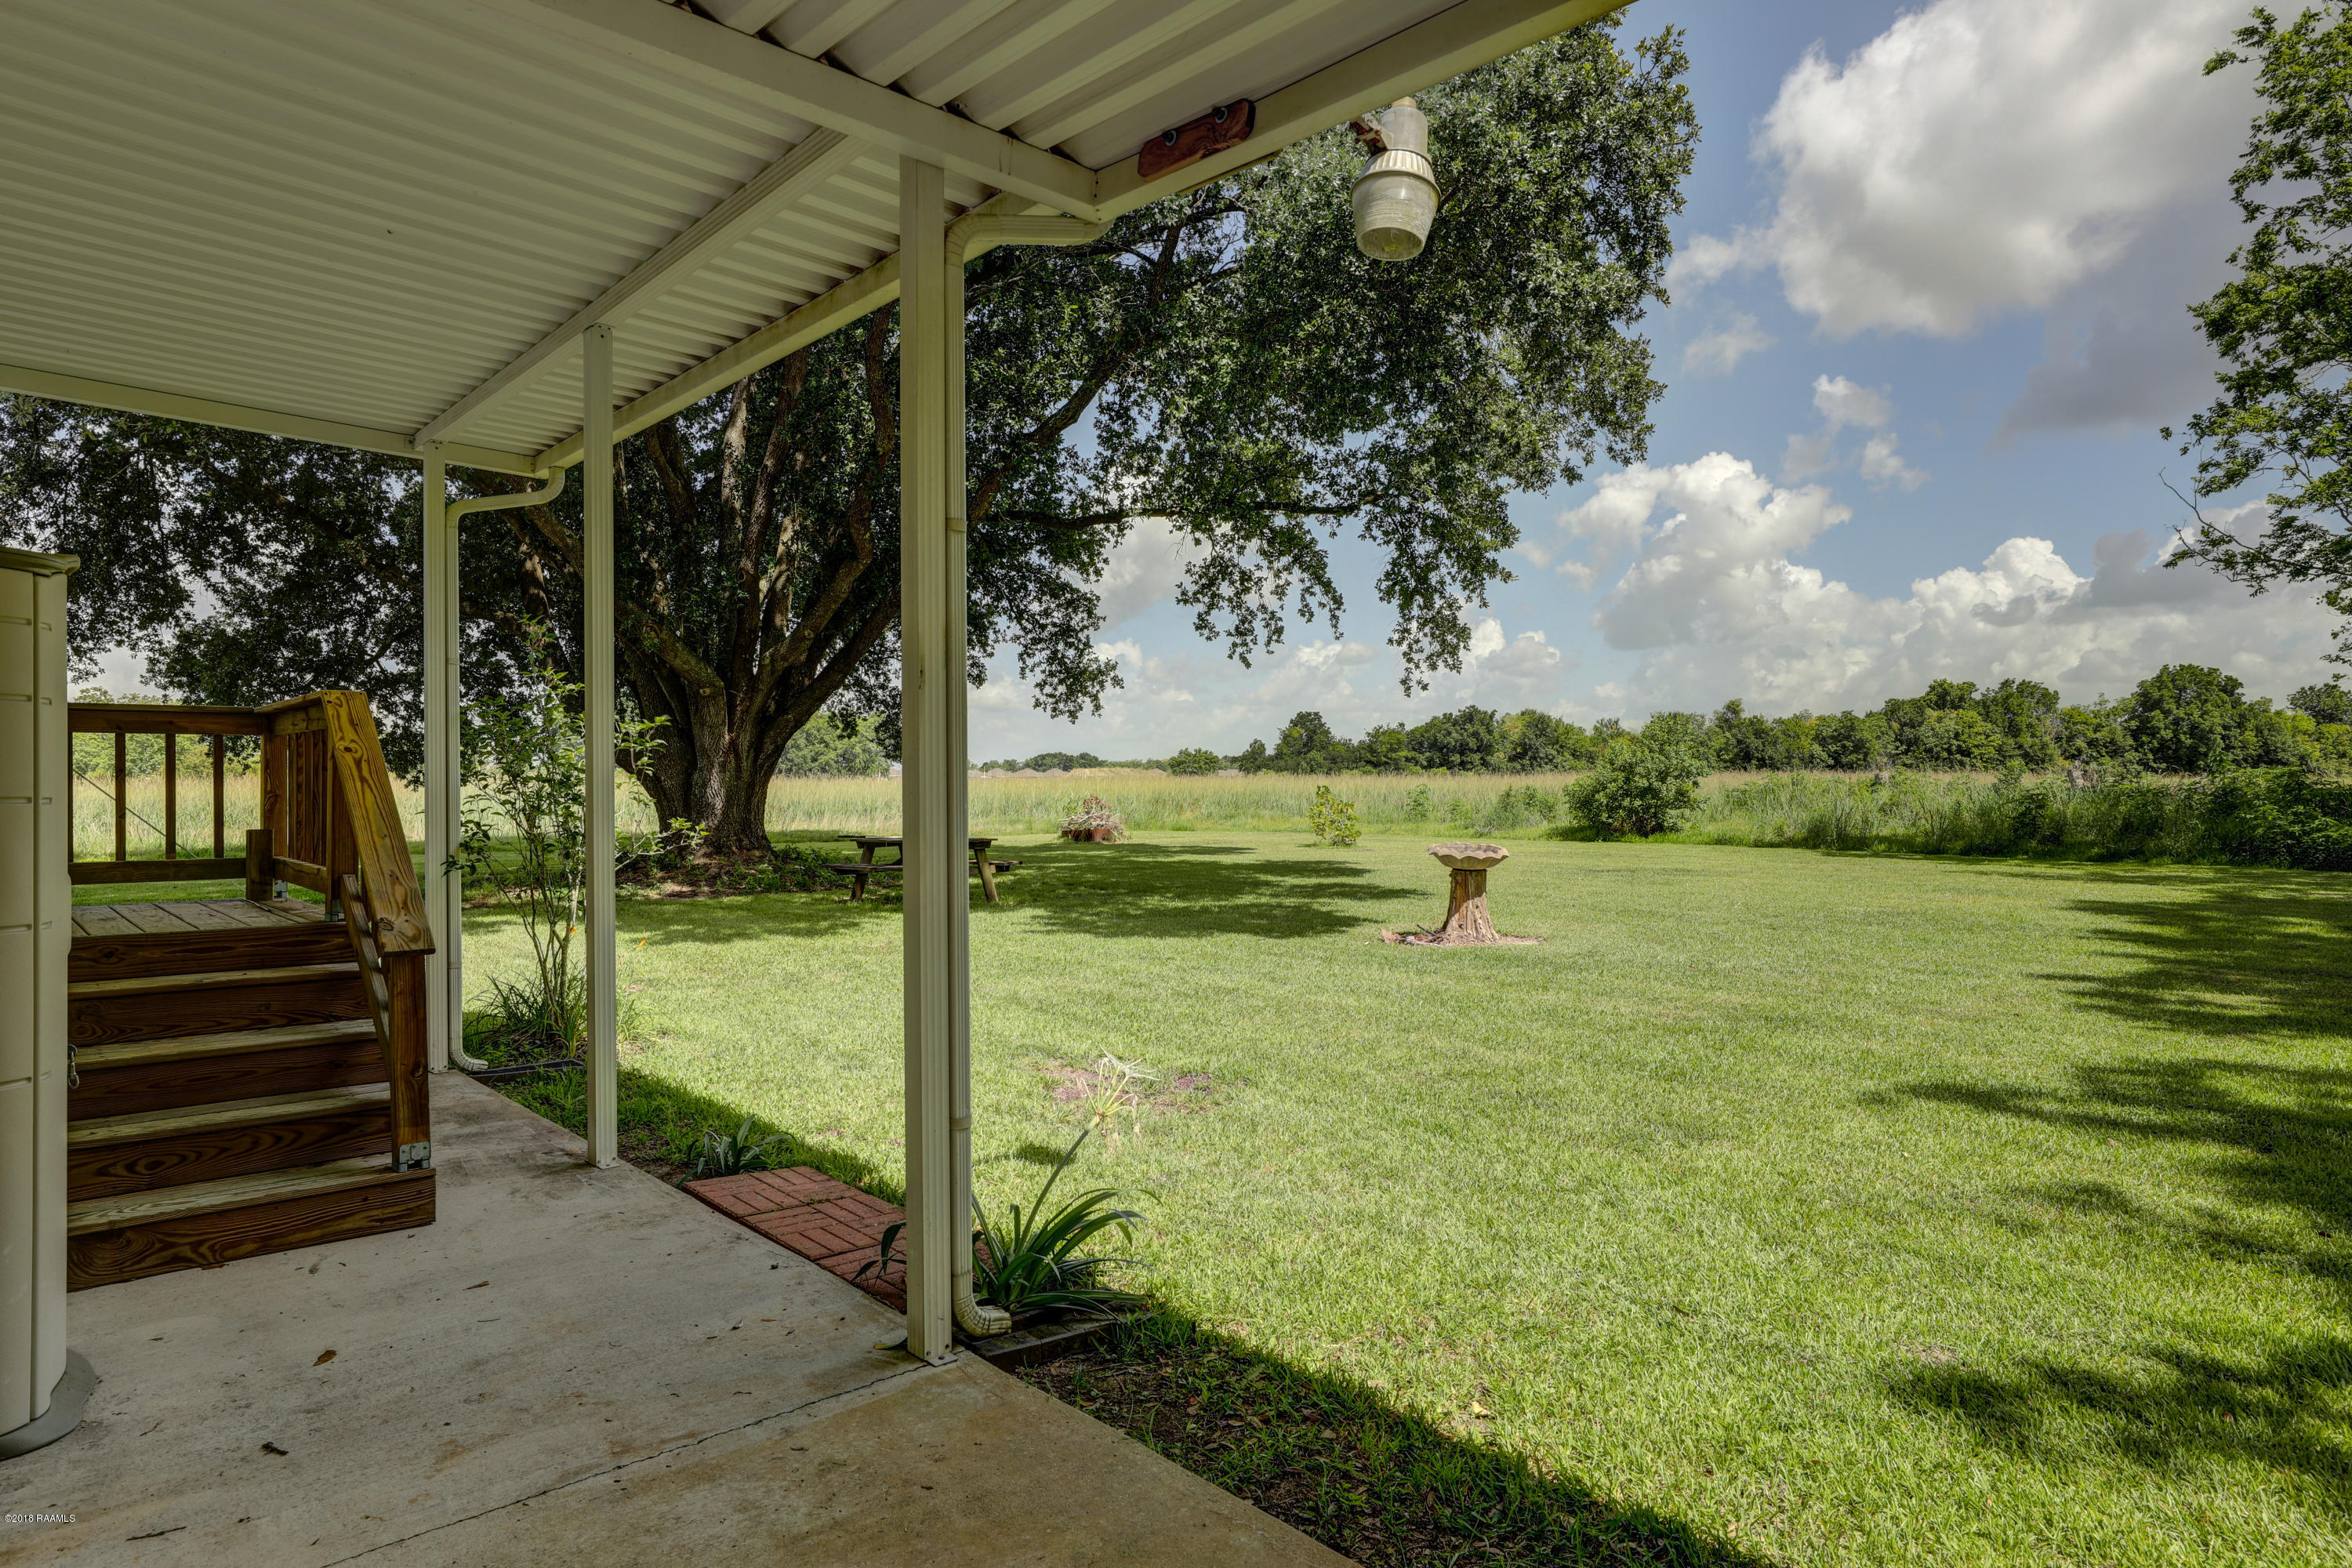 5060 Landry Road, Duson, LA 70529 Photo #10